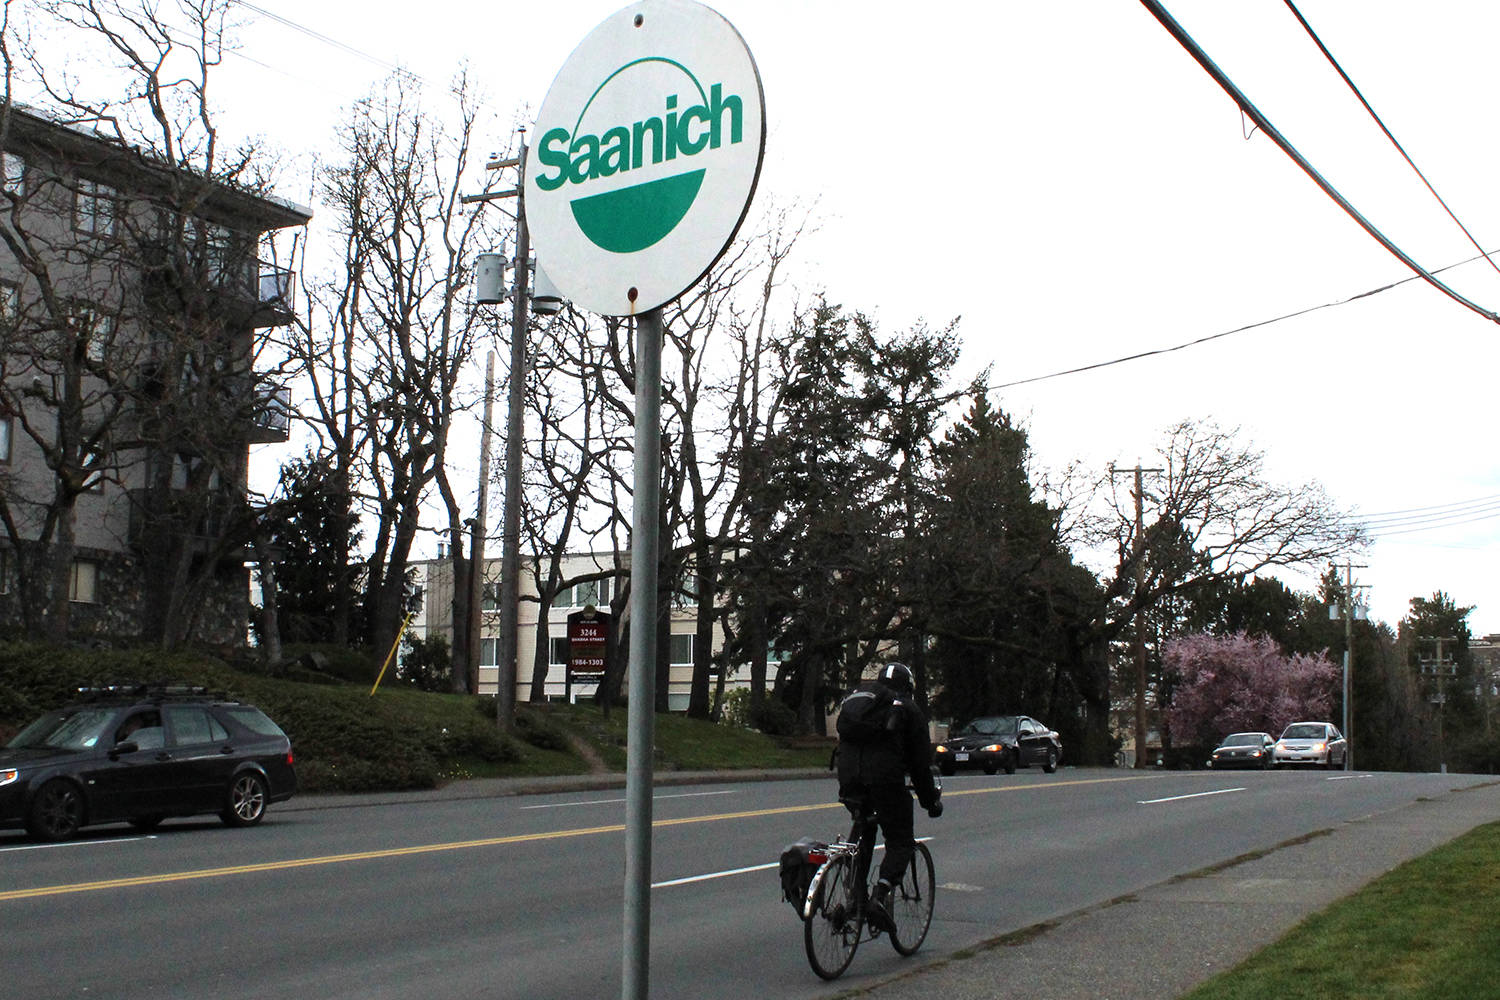 While the Saanich Official Community Plan discourages new drive-thrus due to emissions caused by idling cars, there are no bylaws prohibiting bike ride-thrus. (Black Press Media file photo)